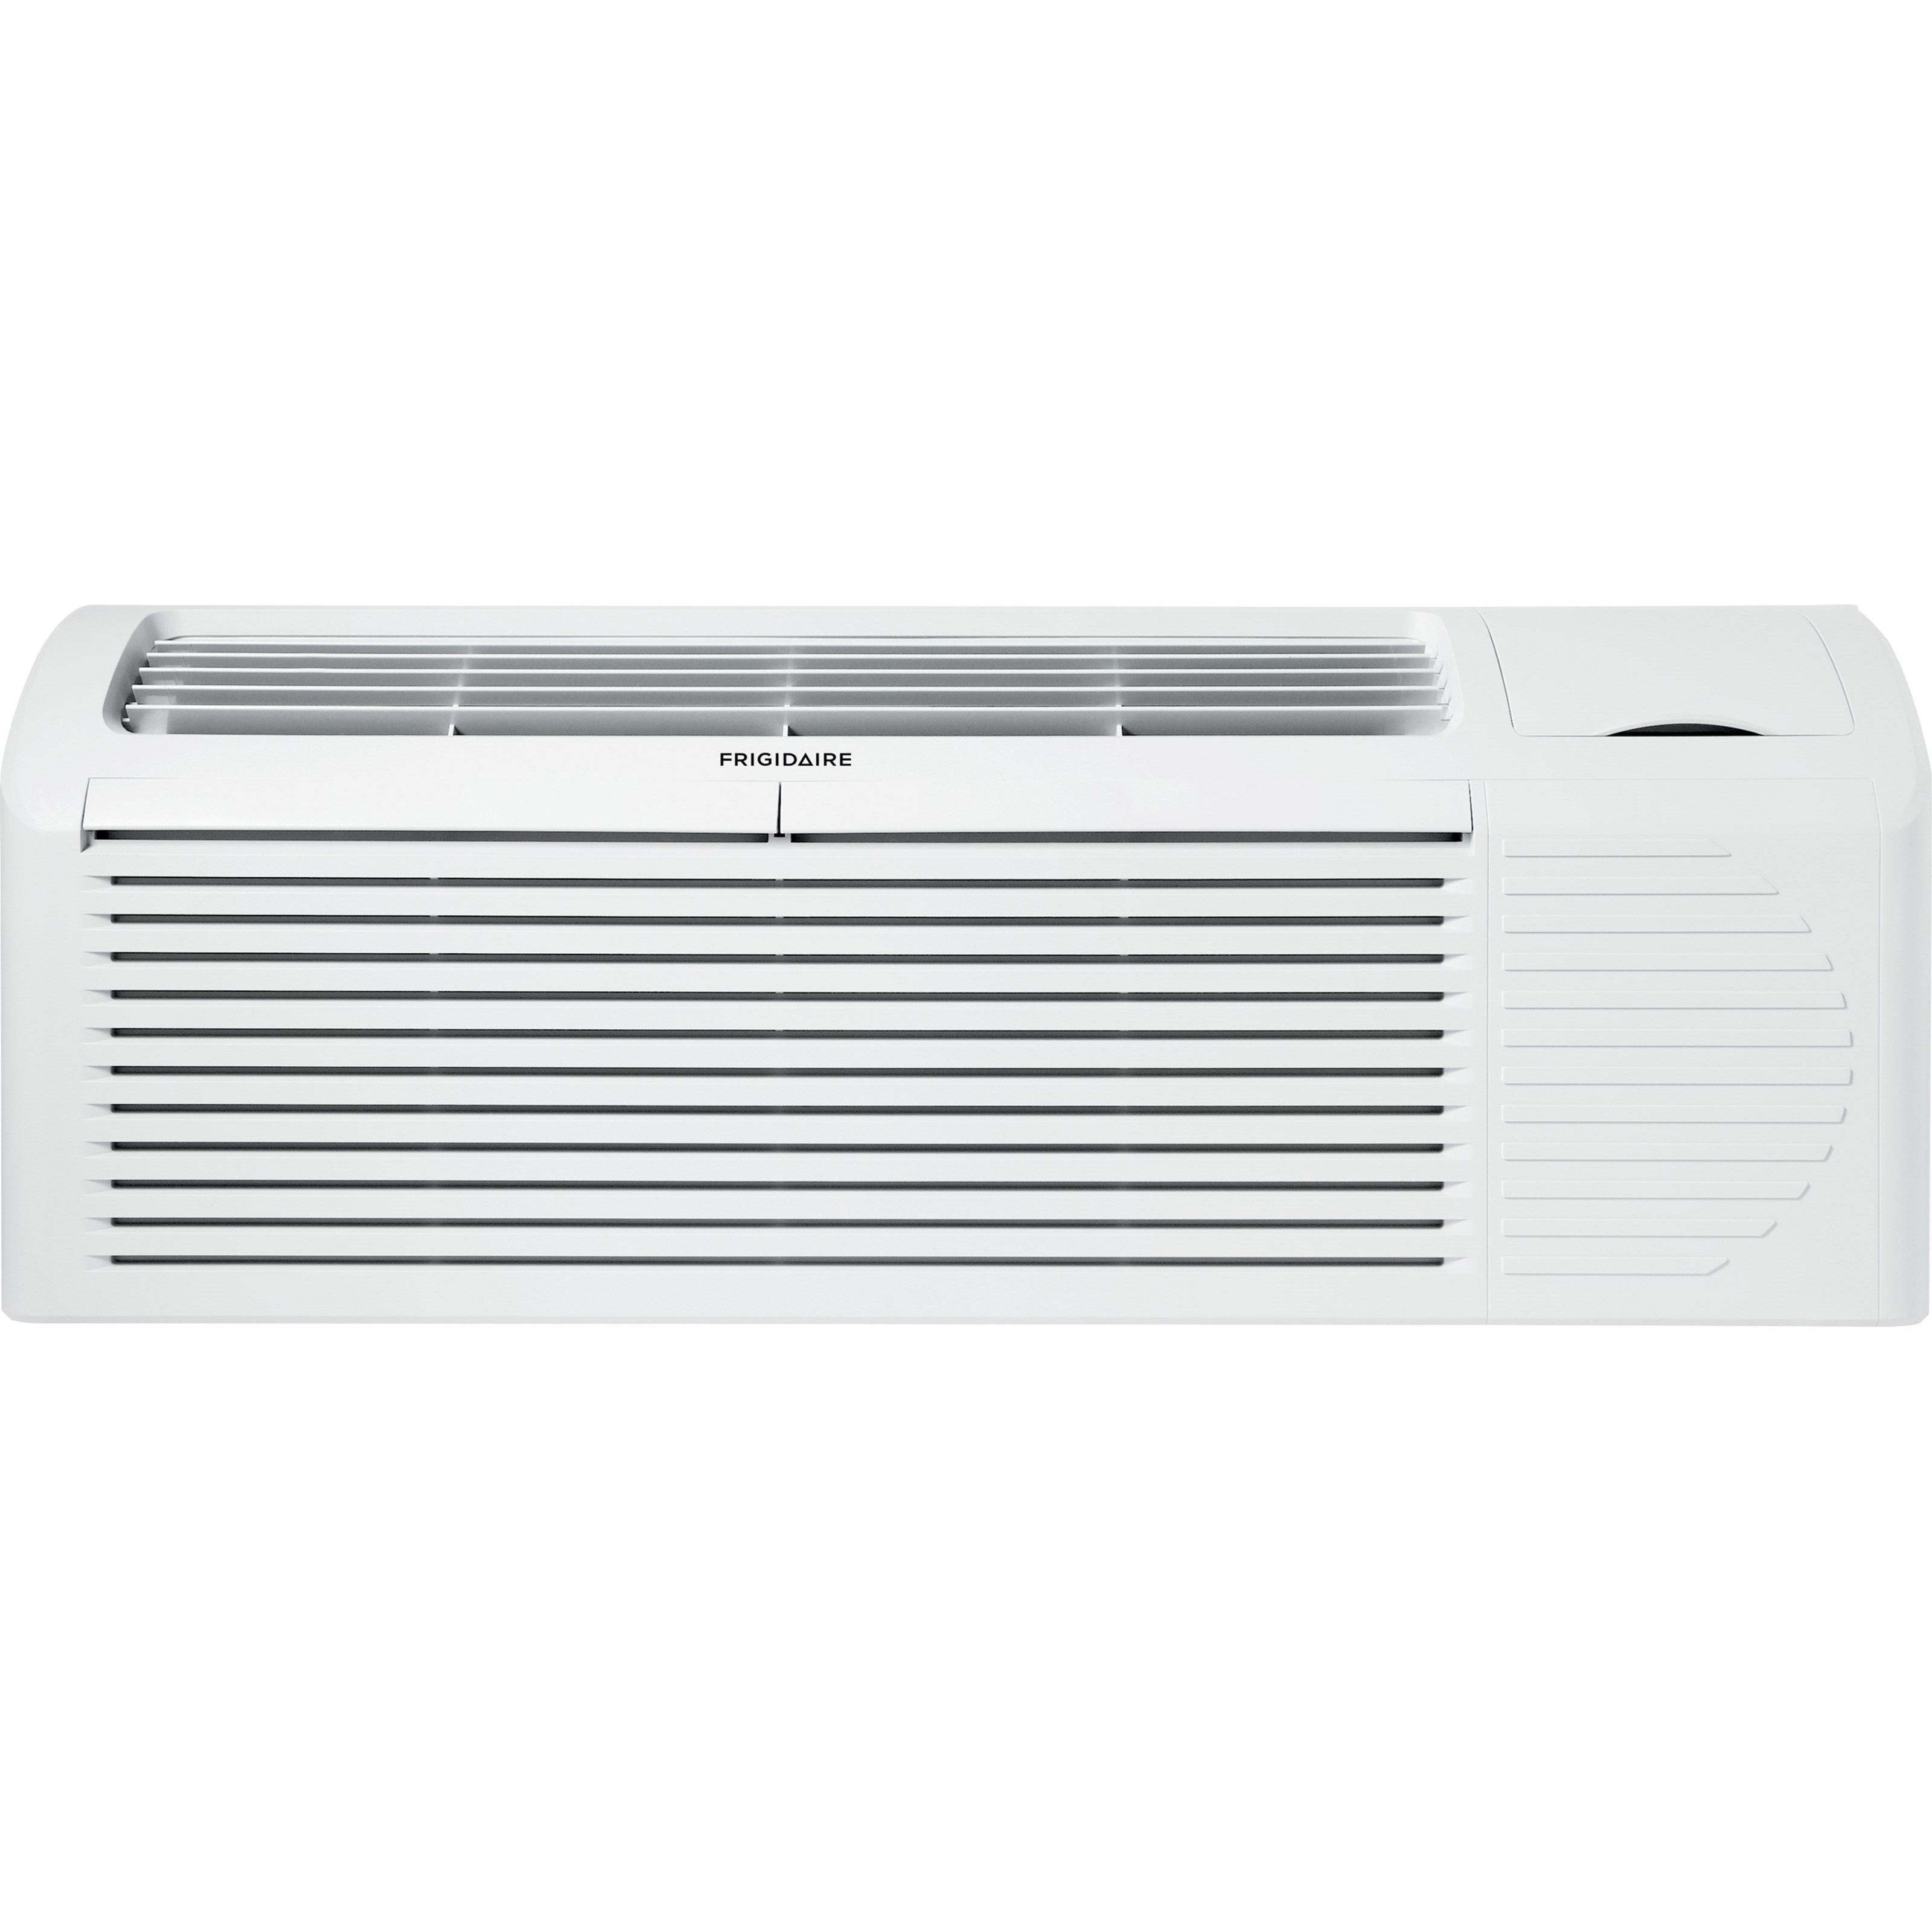 Air Conditioners PTAC unit with Electric Heat 12,000 BTU by Frigidaire at Fisher Home Furnishings